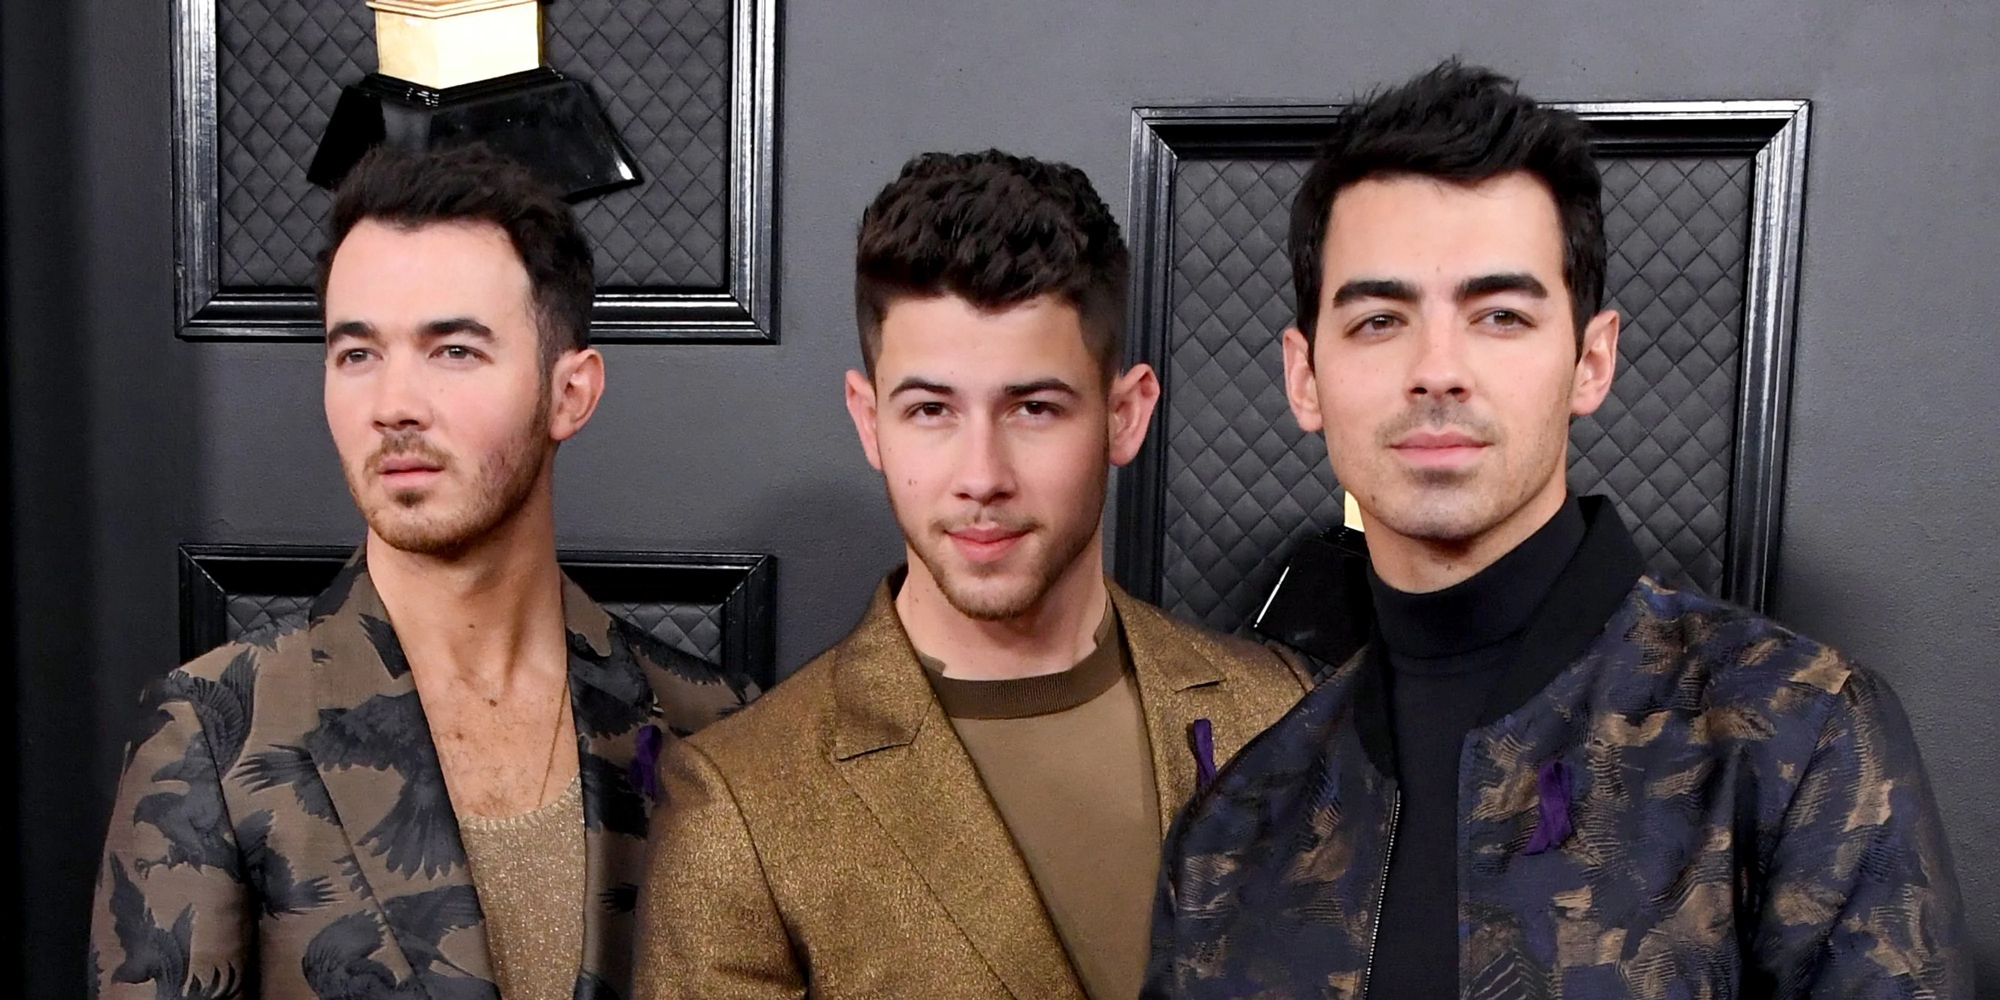 jonas brothers xv karol g x inedit five more minutes